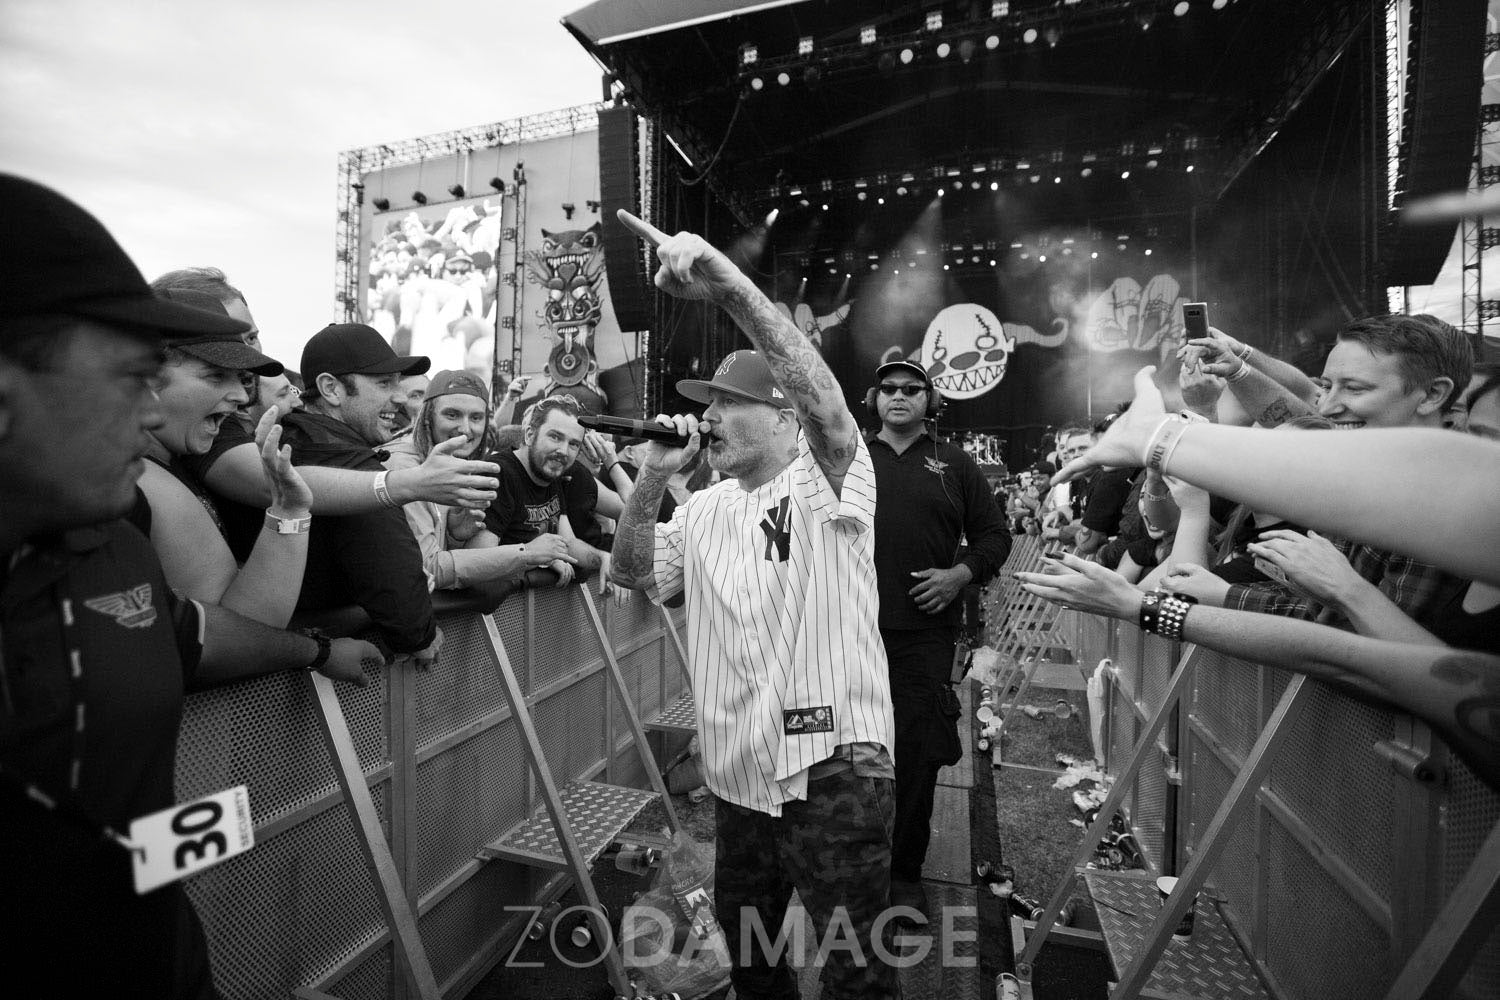 Fred Durst (Limp Bizkit), Download 2018 by Zo Damage